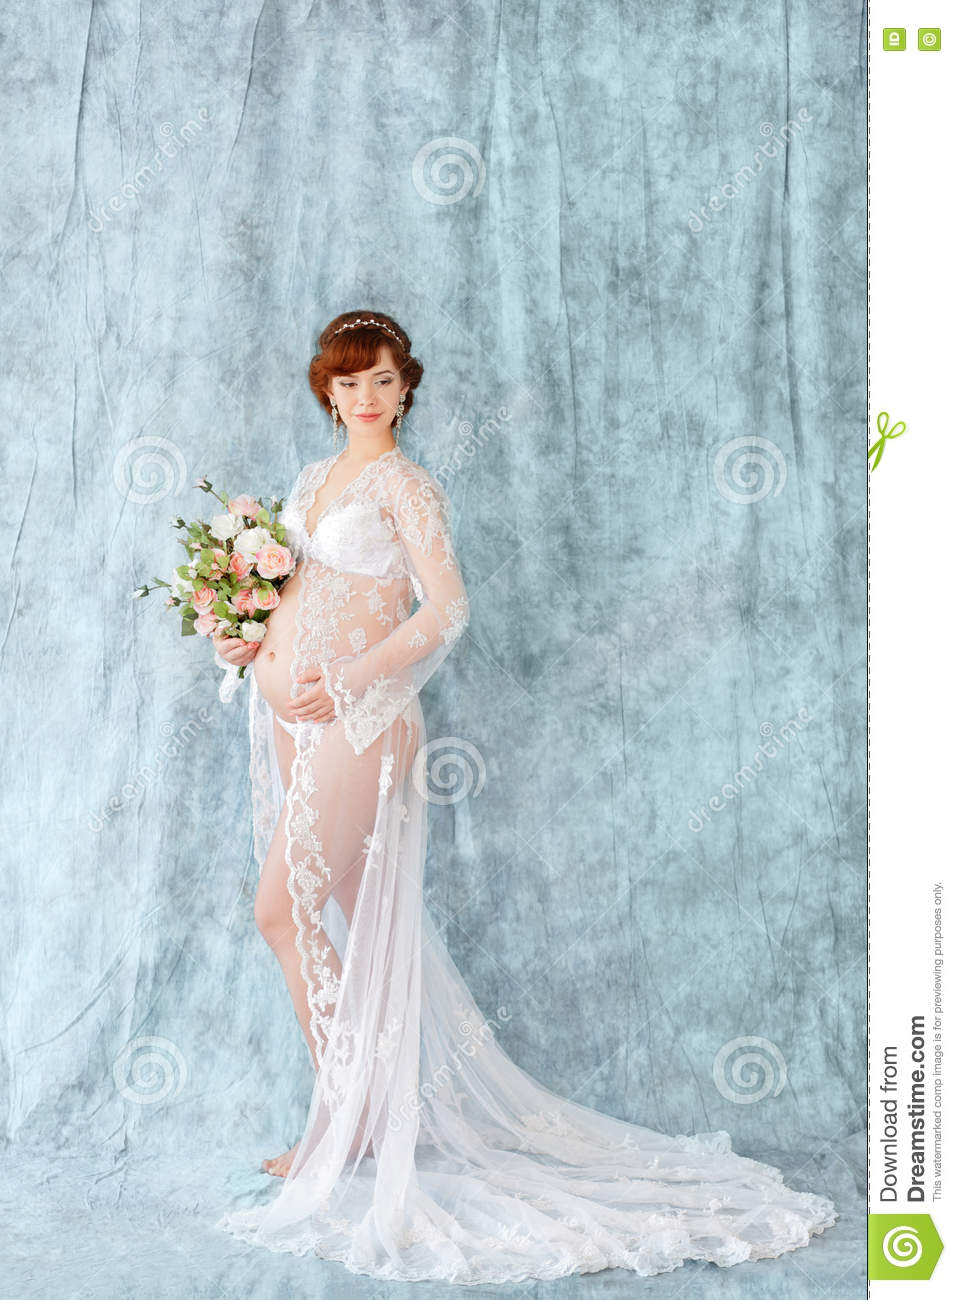 Pregnant Woman Holding Flowers, Standing In The Boudoir Dress On A ...